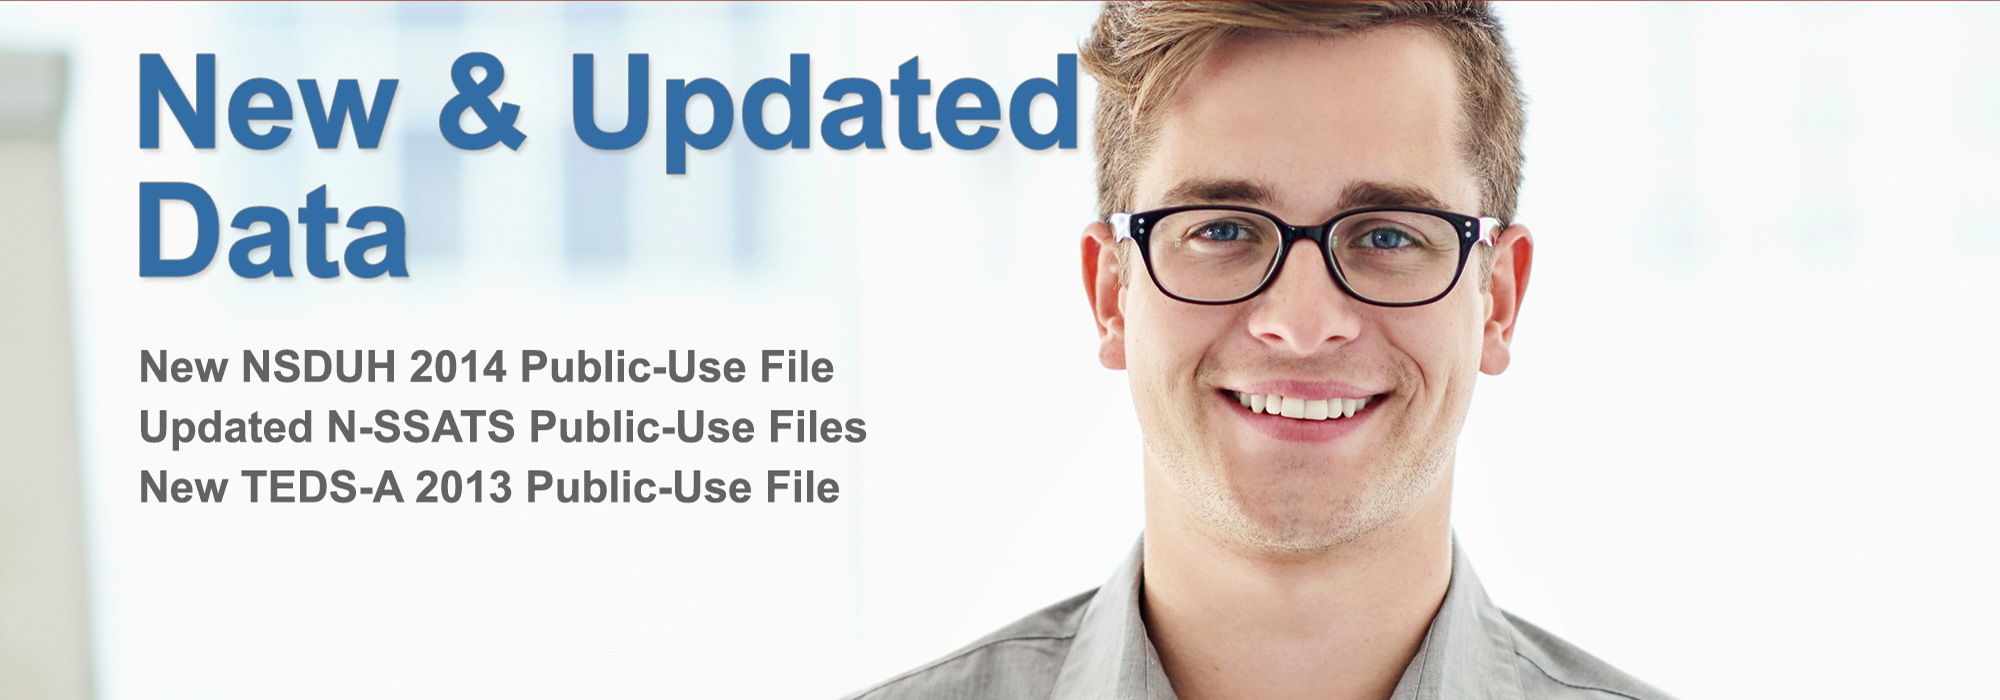 New and updated data. New NSDUH 2014 Public-Use File. Updated NSSATS Public-Use Files. New TEDSA 2013 Public-Use File.